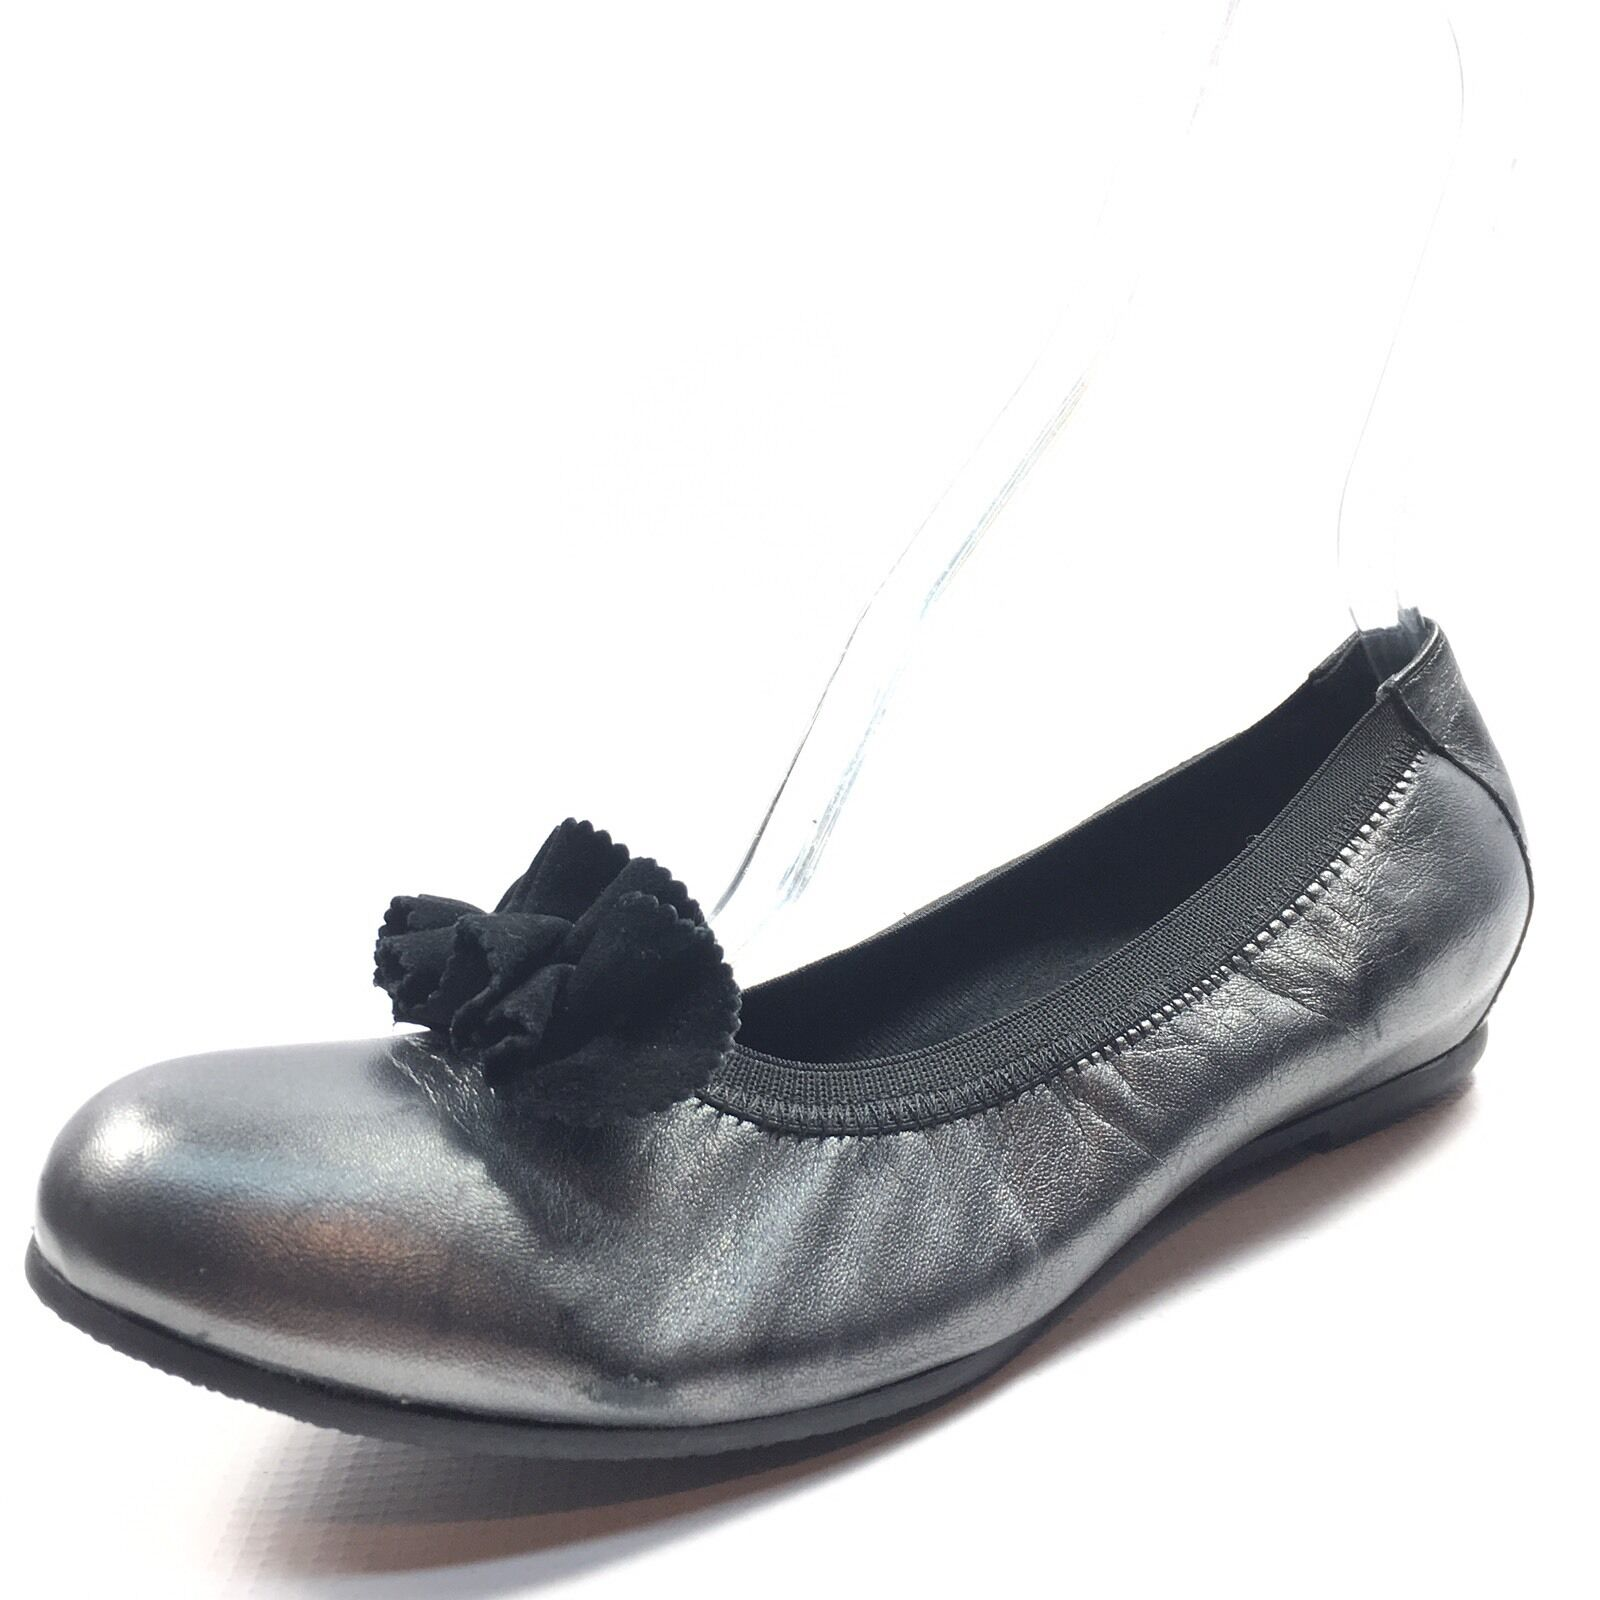 Munro American Merrie Gunmetal Leather Flats Womens Size Size Size 9.5 M cc968f